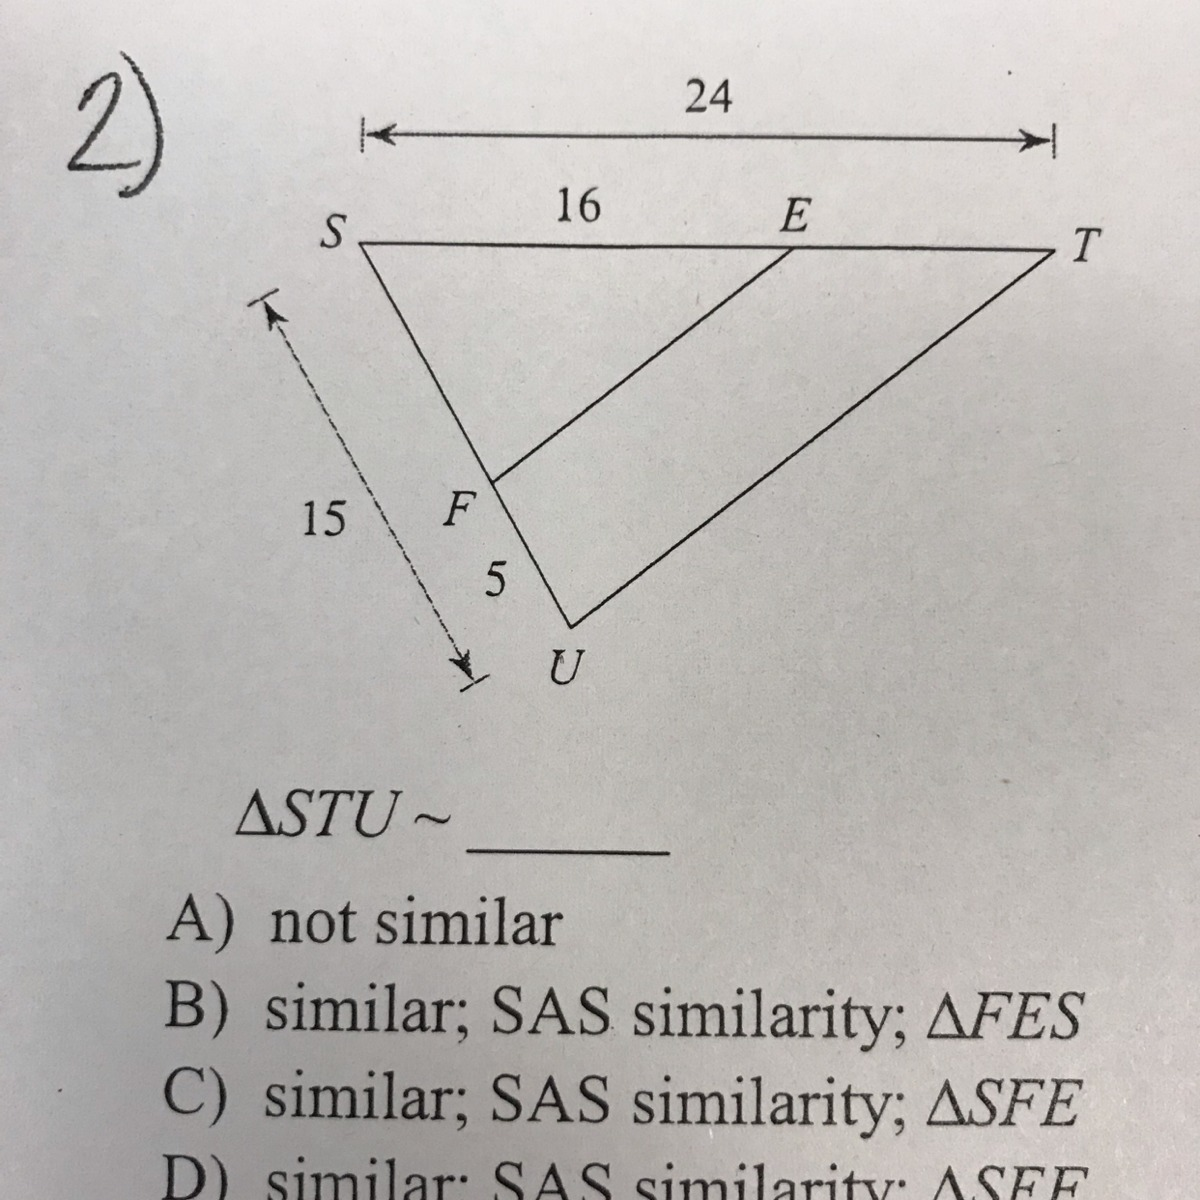 Sas Bad 24 Helpp I Need Help I Am Very Bad A Geometry So If Someone Can